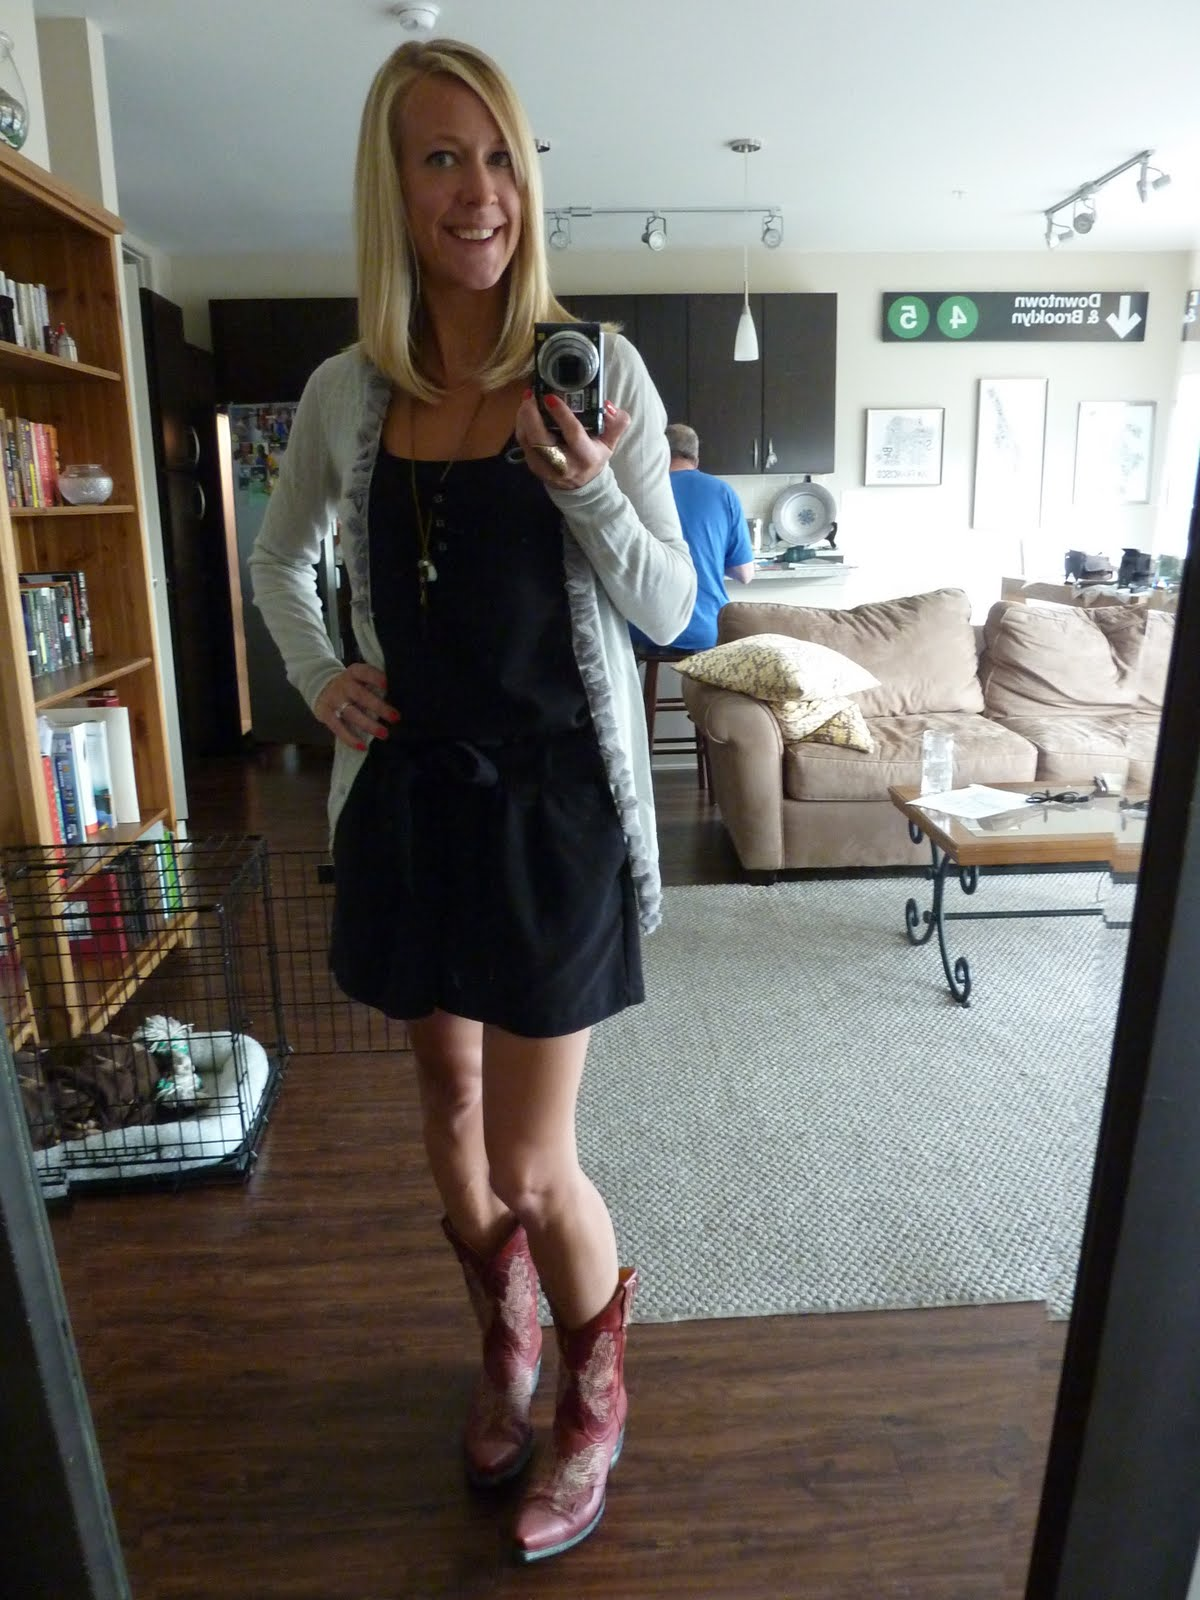 paid up top: todays outfit: romping around like a cowgirl